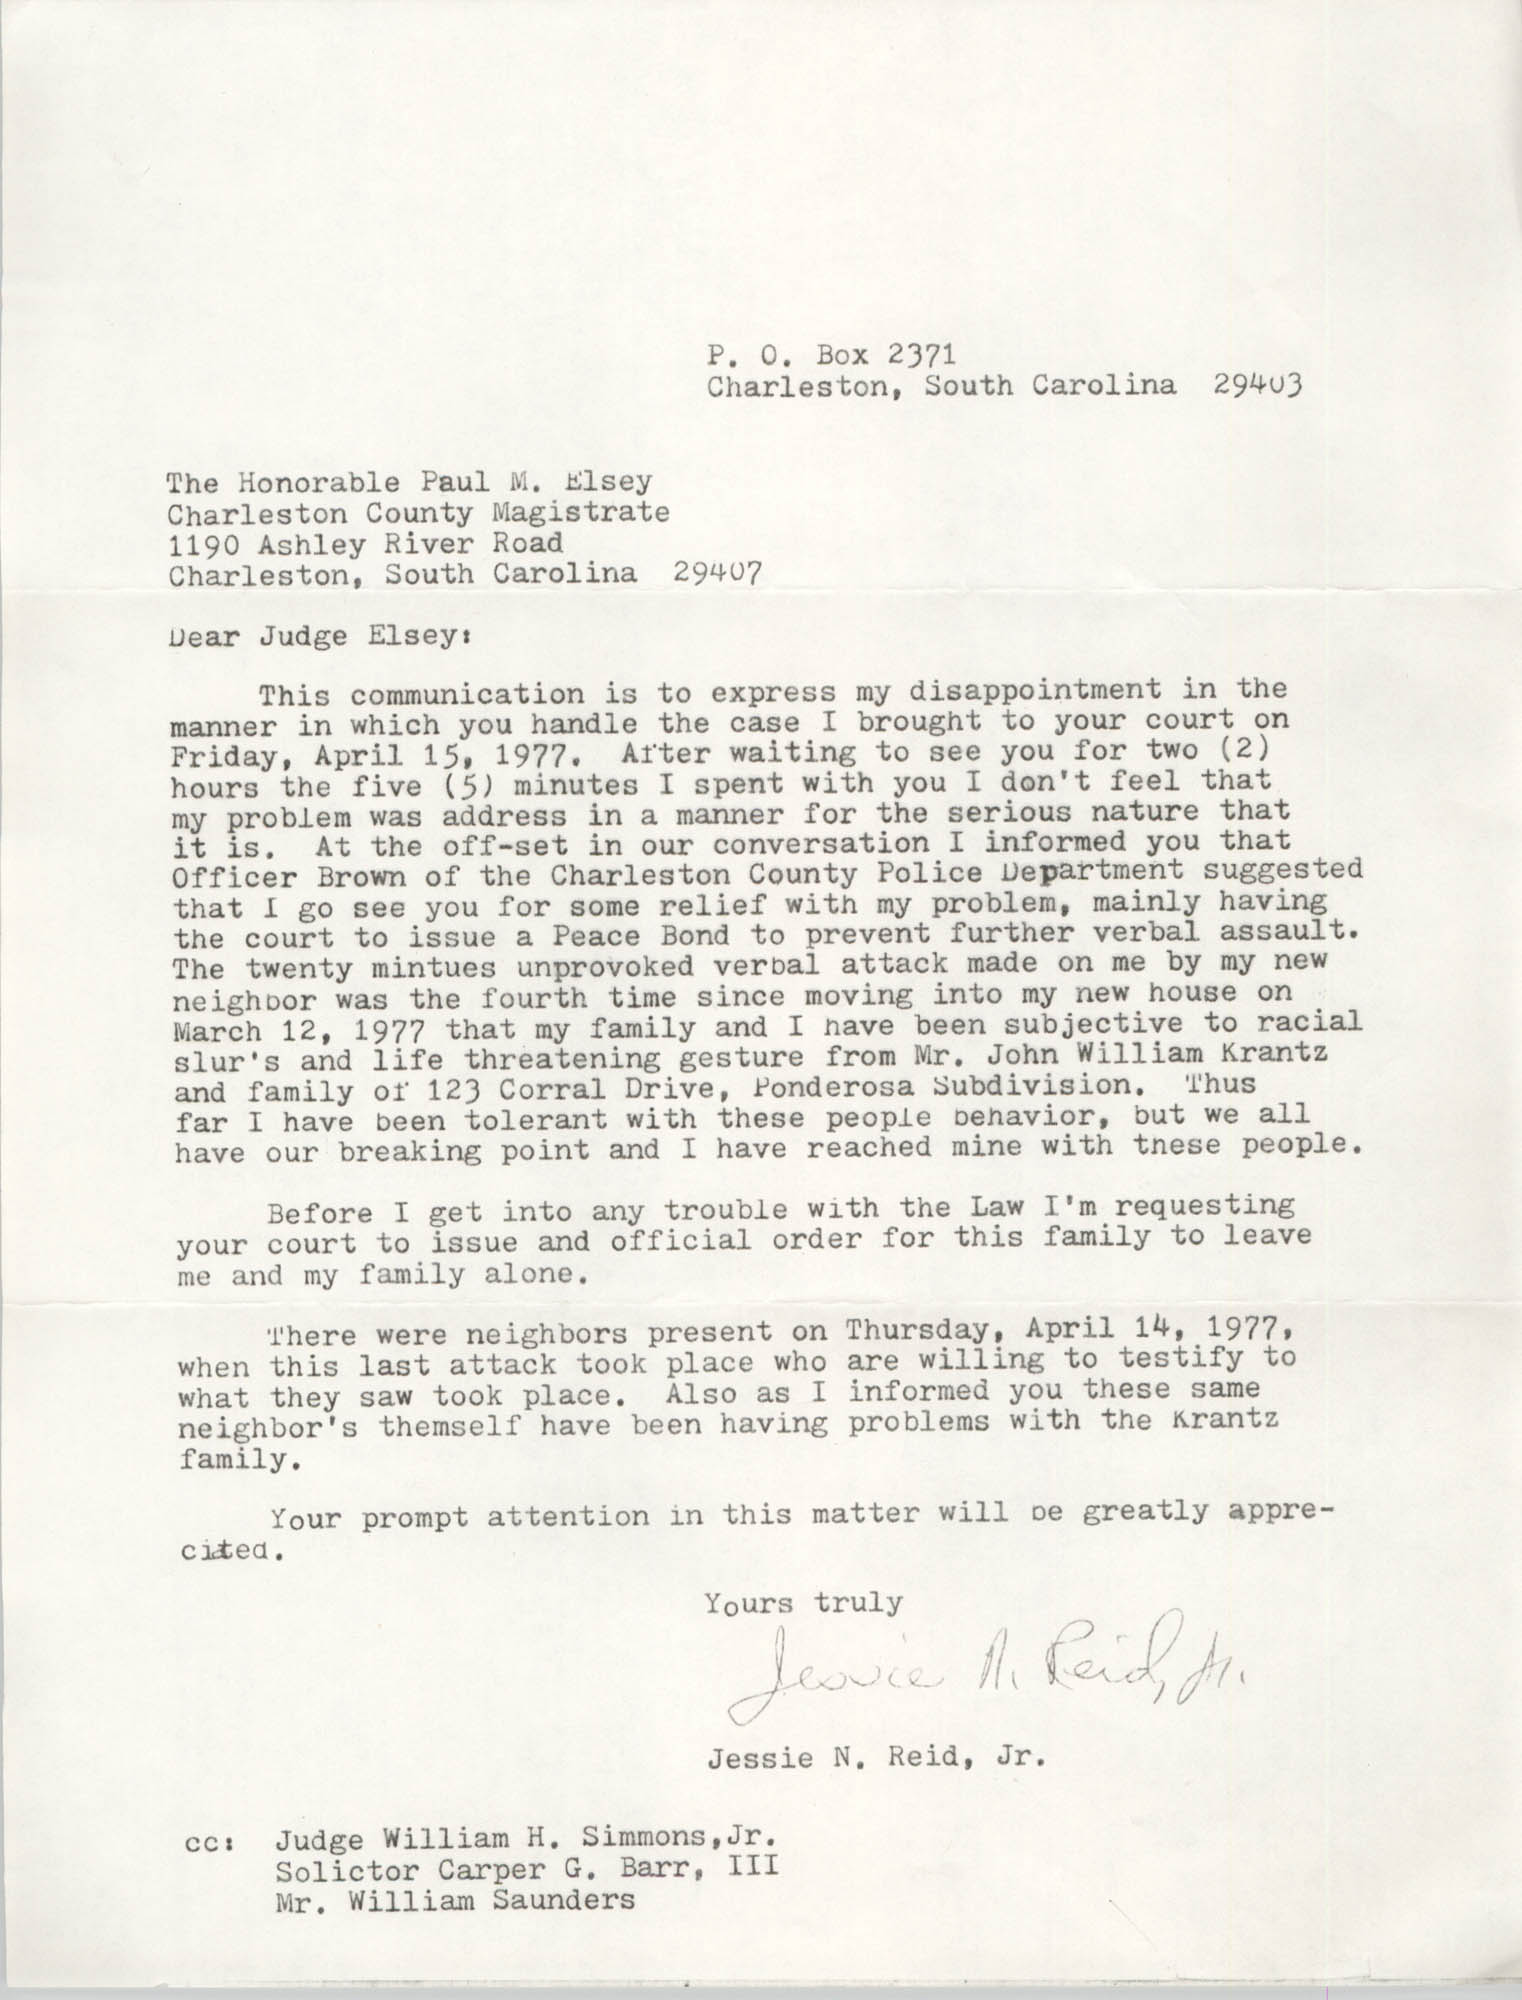 Letter from Jessie N. Reid, Jr. to Paul M. Elsey, 1977